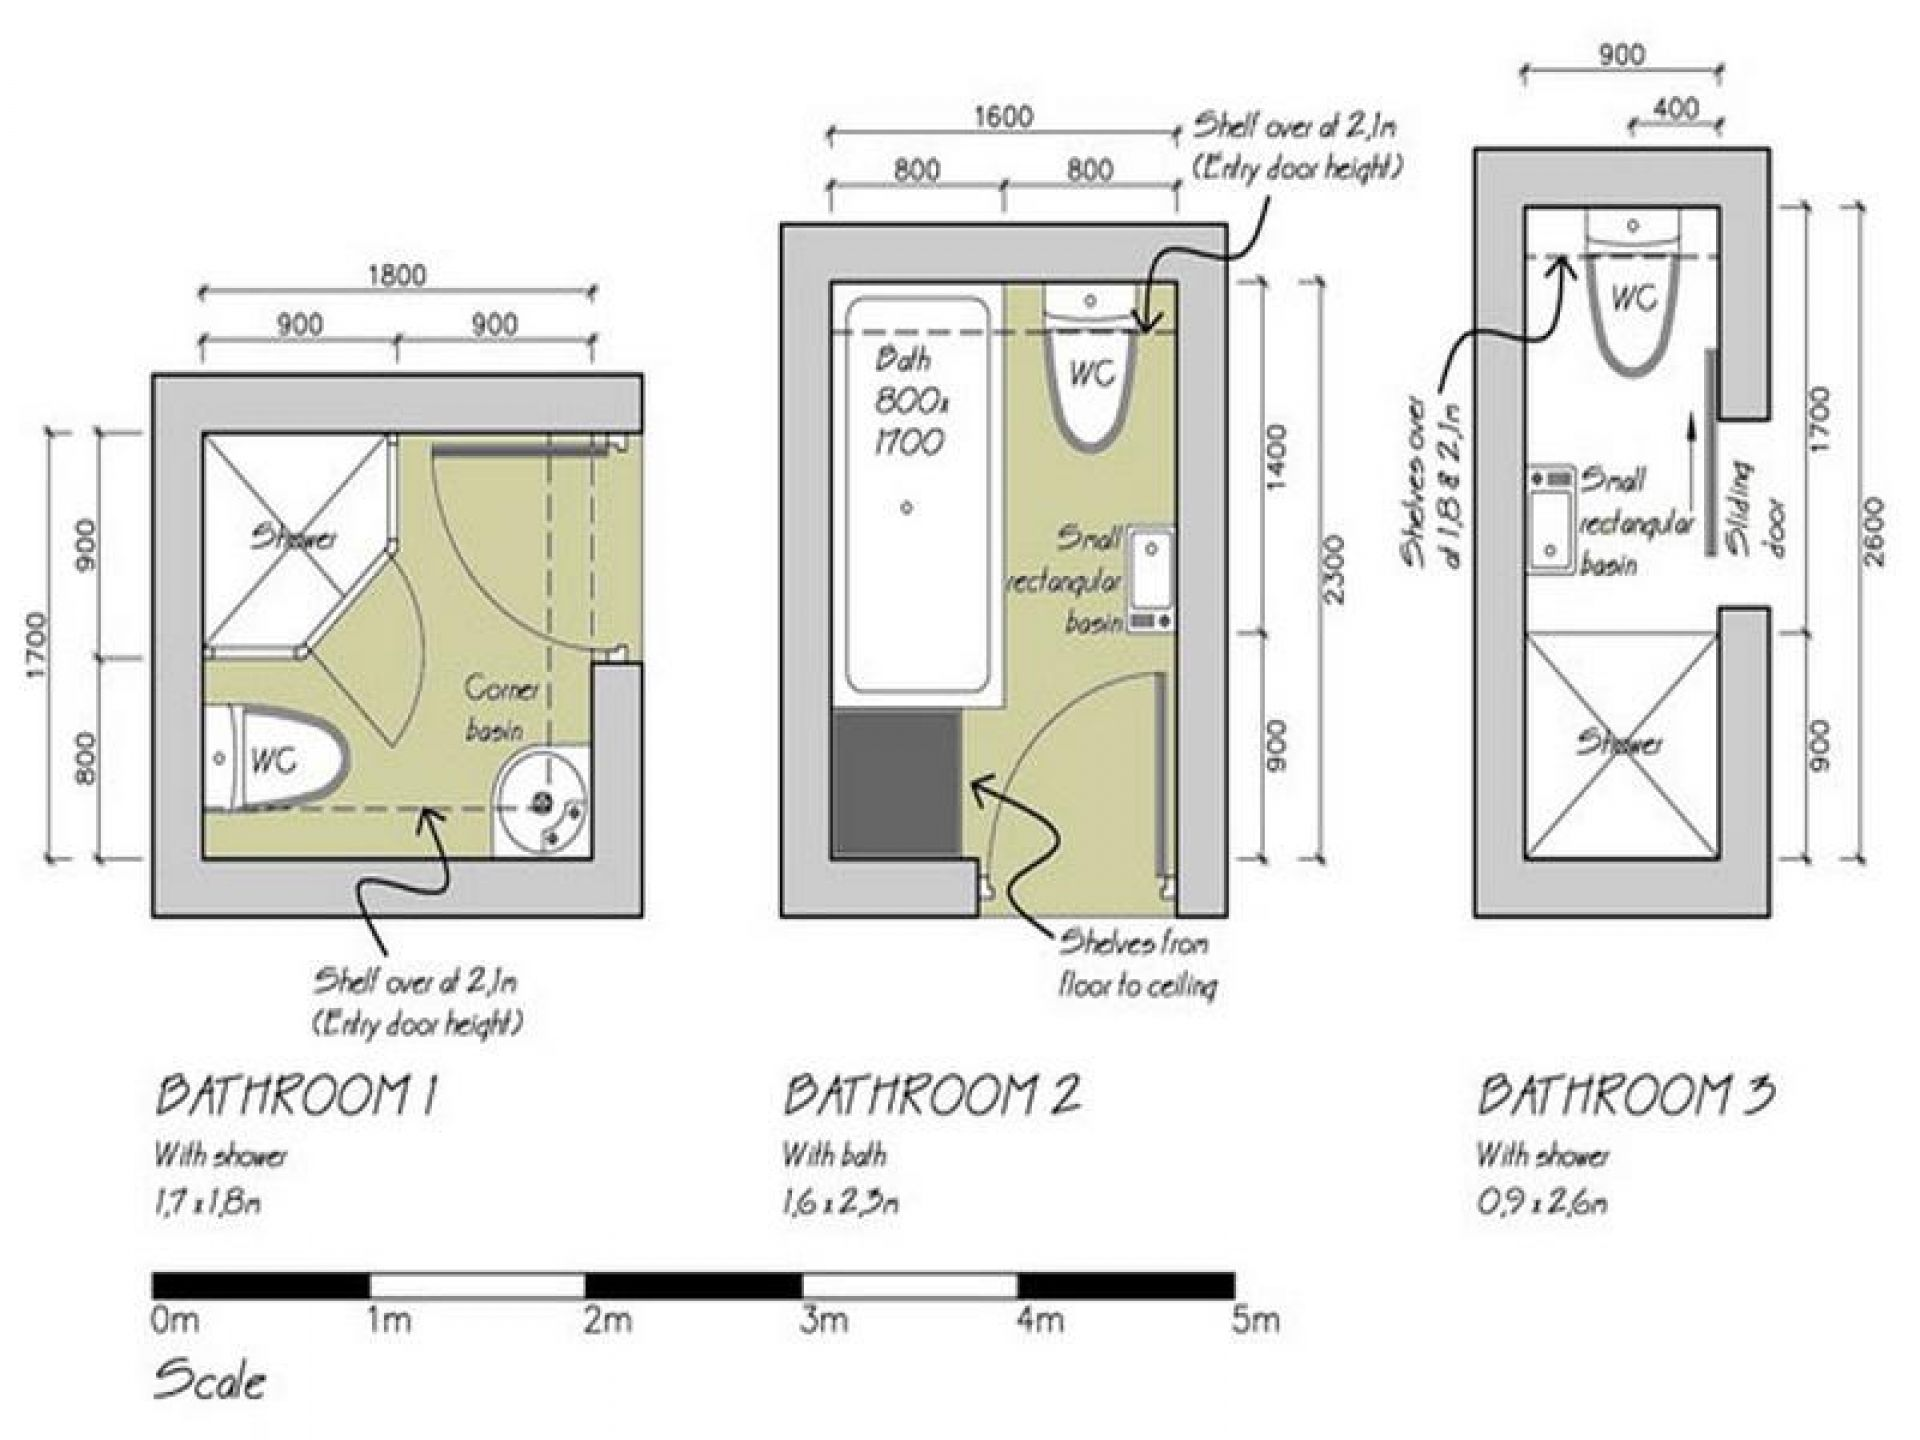 Small bathroom floor plans 5 x 8 - 5ft X 8ft Standard Small Bathroom Floor Plan With Shower Small Bathroom Floor Plans Pinterest Small Bathroom Floor Plans Bathroom Floor Plans And